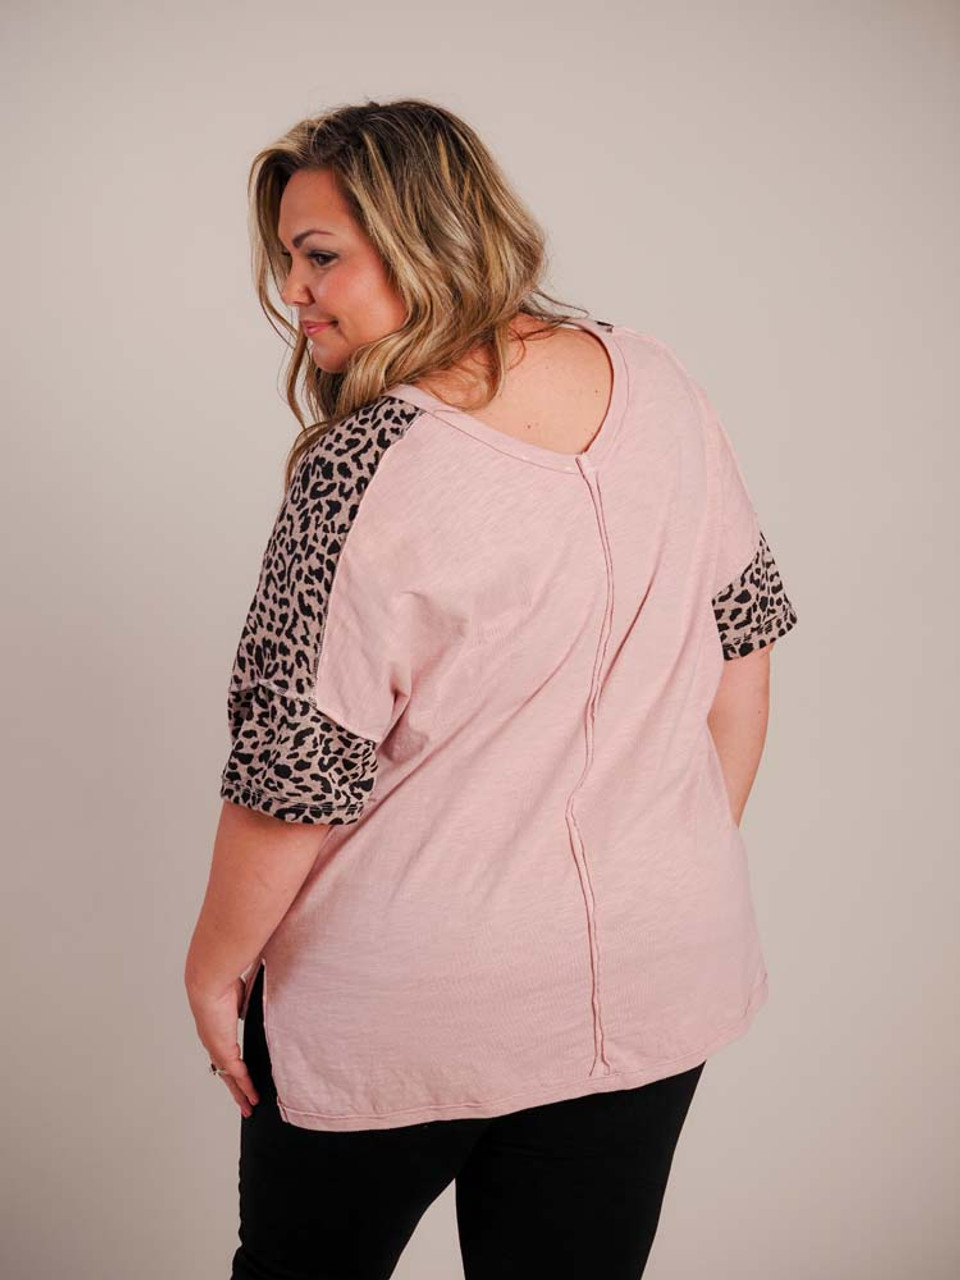 Wide v-neck; heatherd rose and black leopard print at shoulders, down sleeves, and at bottom of short sleeves; vertical raw seam detail down center of back